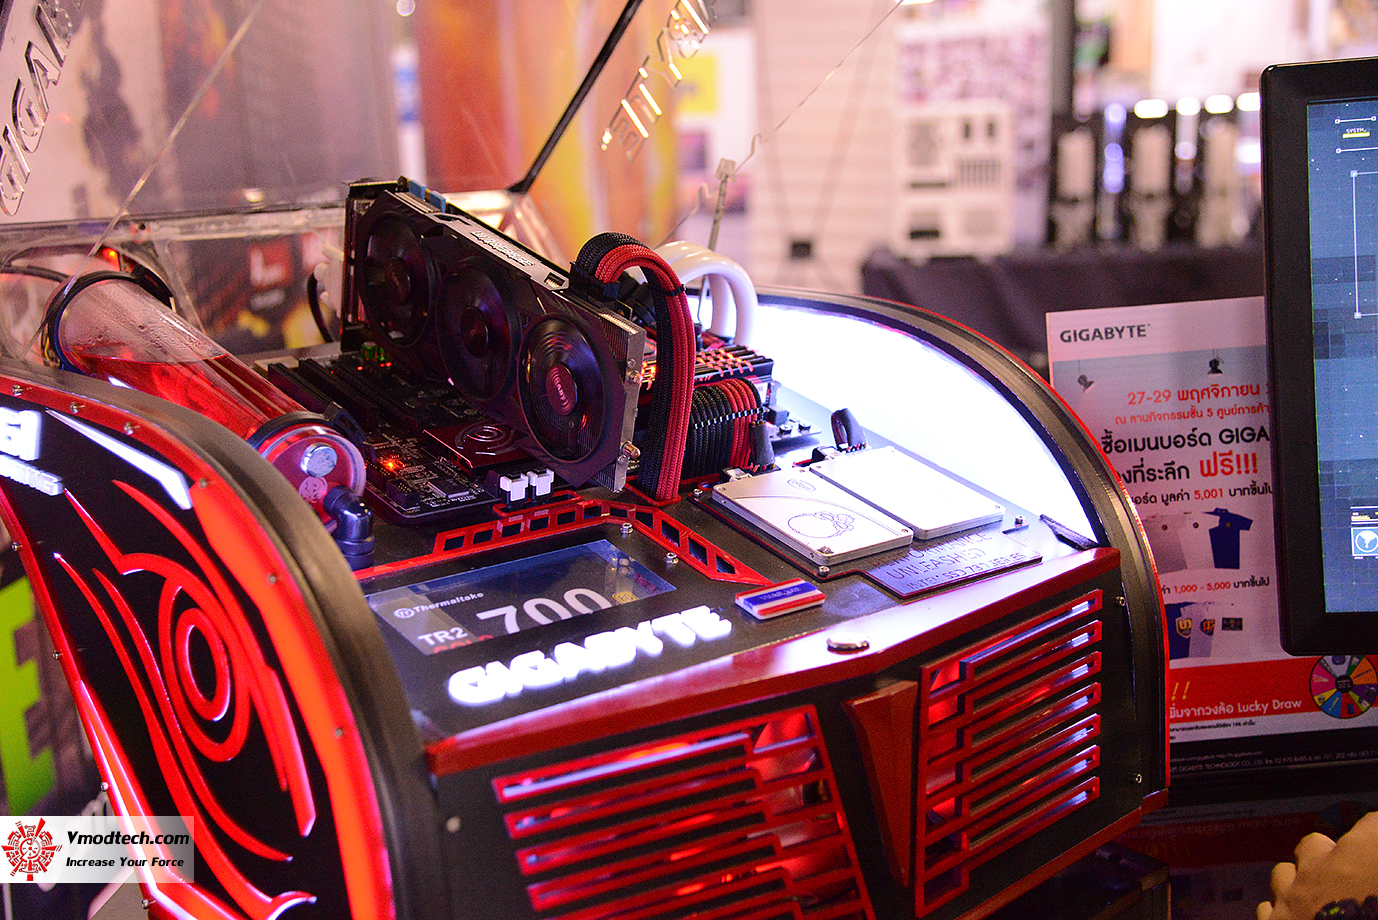 dsc 7610 AMD OMG! Party 2015 (AMD Overclock Modding Gaming Party 2015)